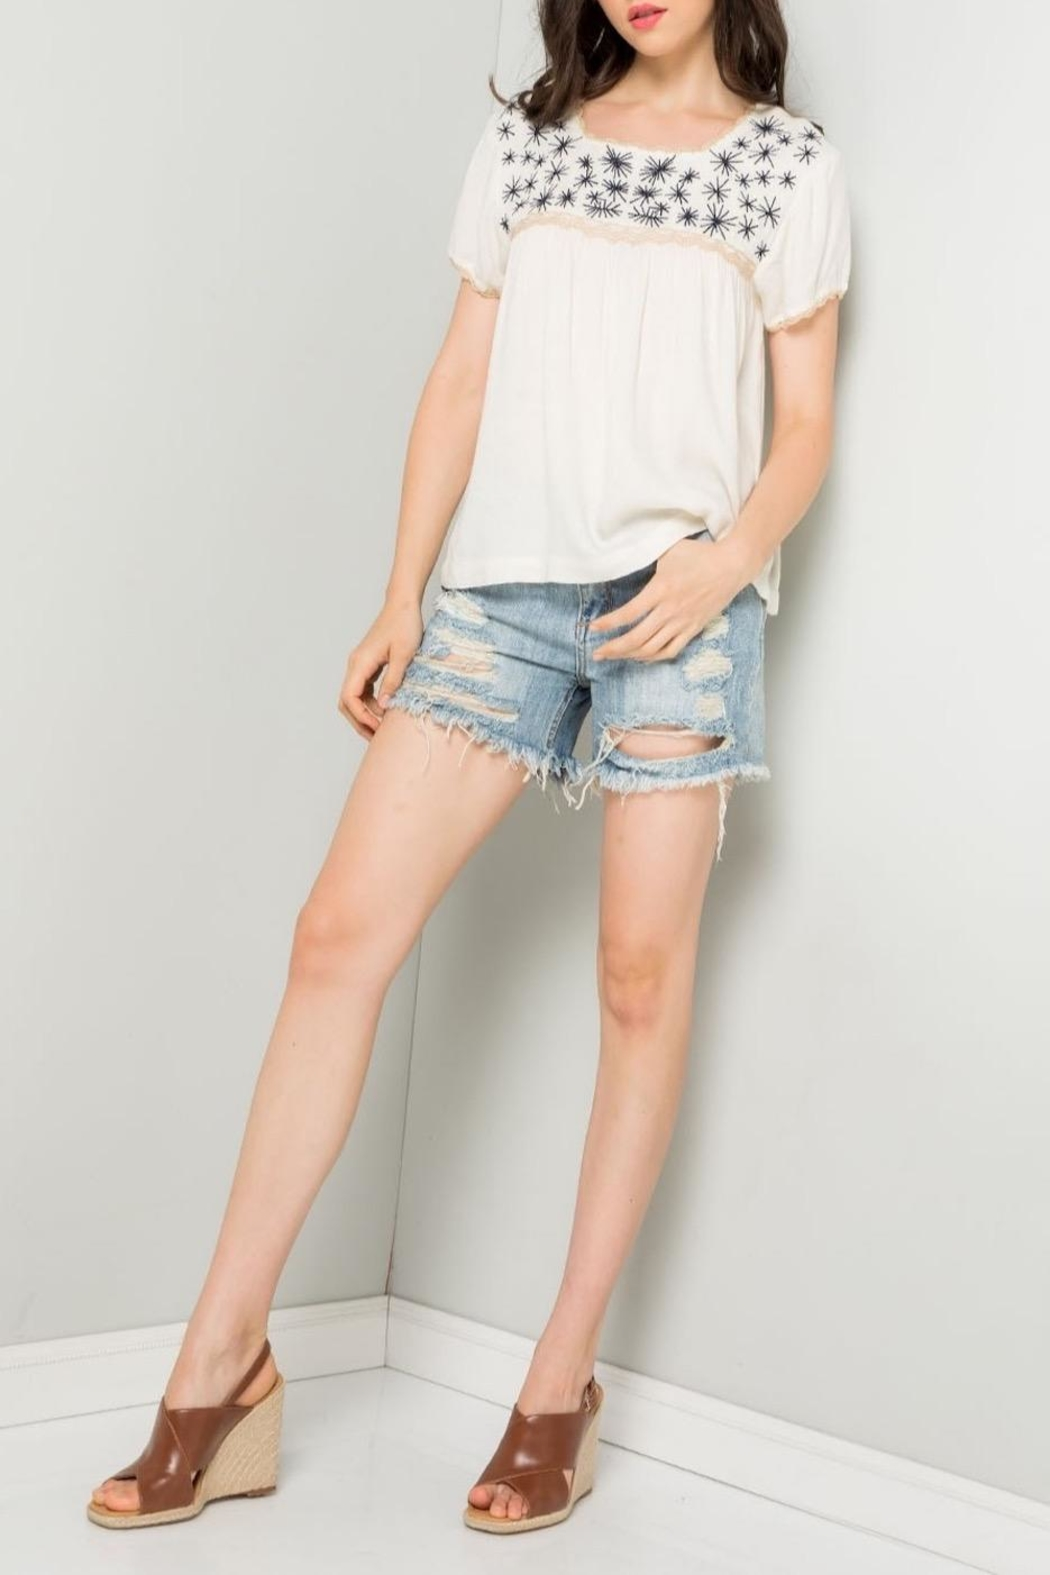 THML Clothing Cream Embroidered Top - Main Image